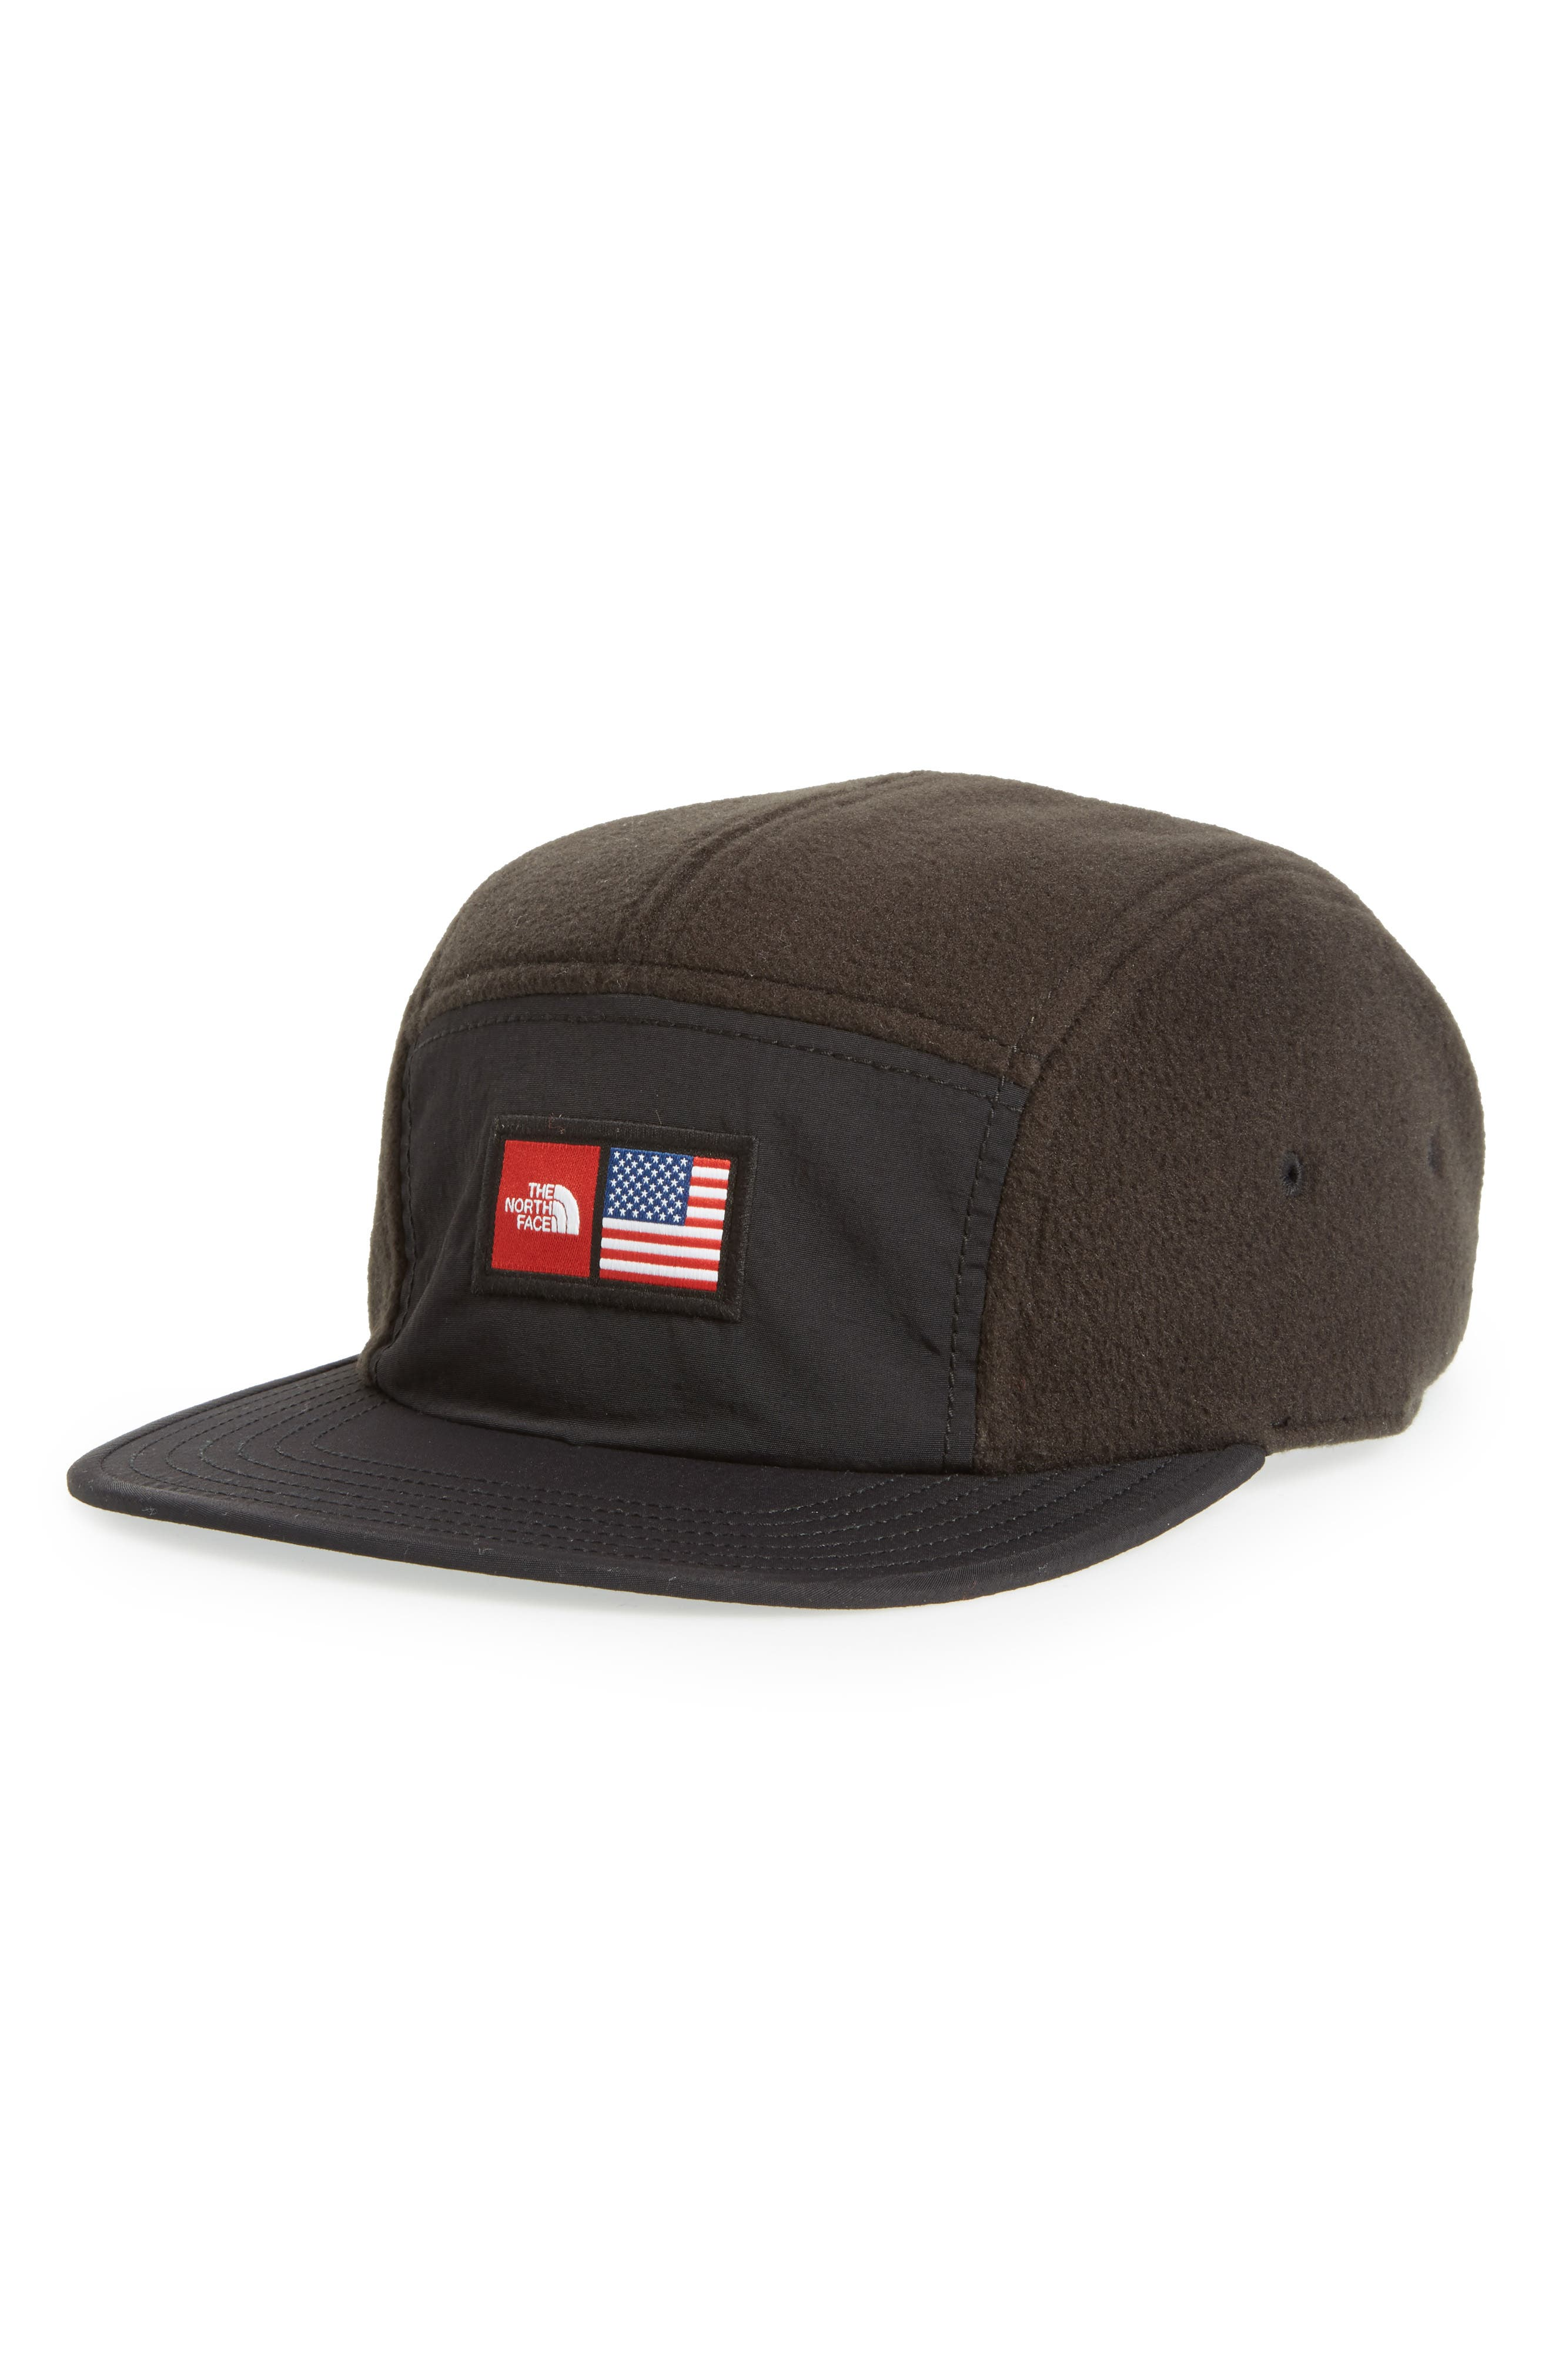 Main Image - The North Face International Collection Five-Panel Cap